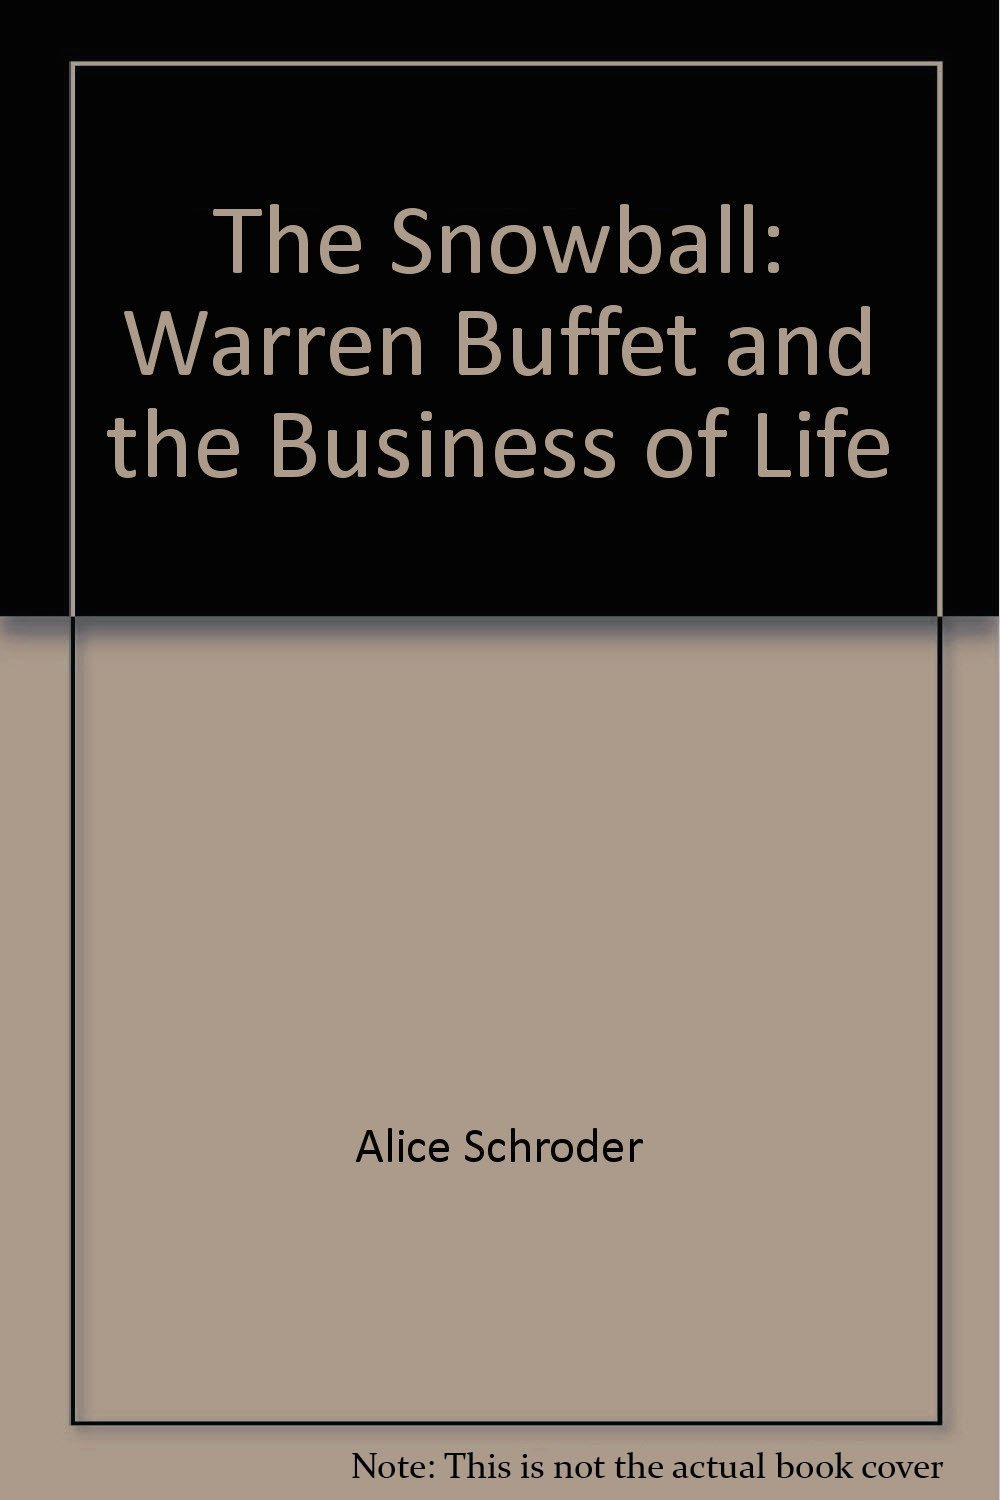 Download The Snowball: Warren Buffet and the Business of Life, UNABRIDGED pdf epub